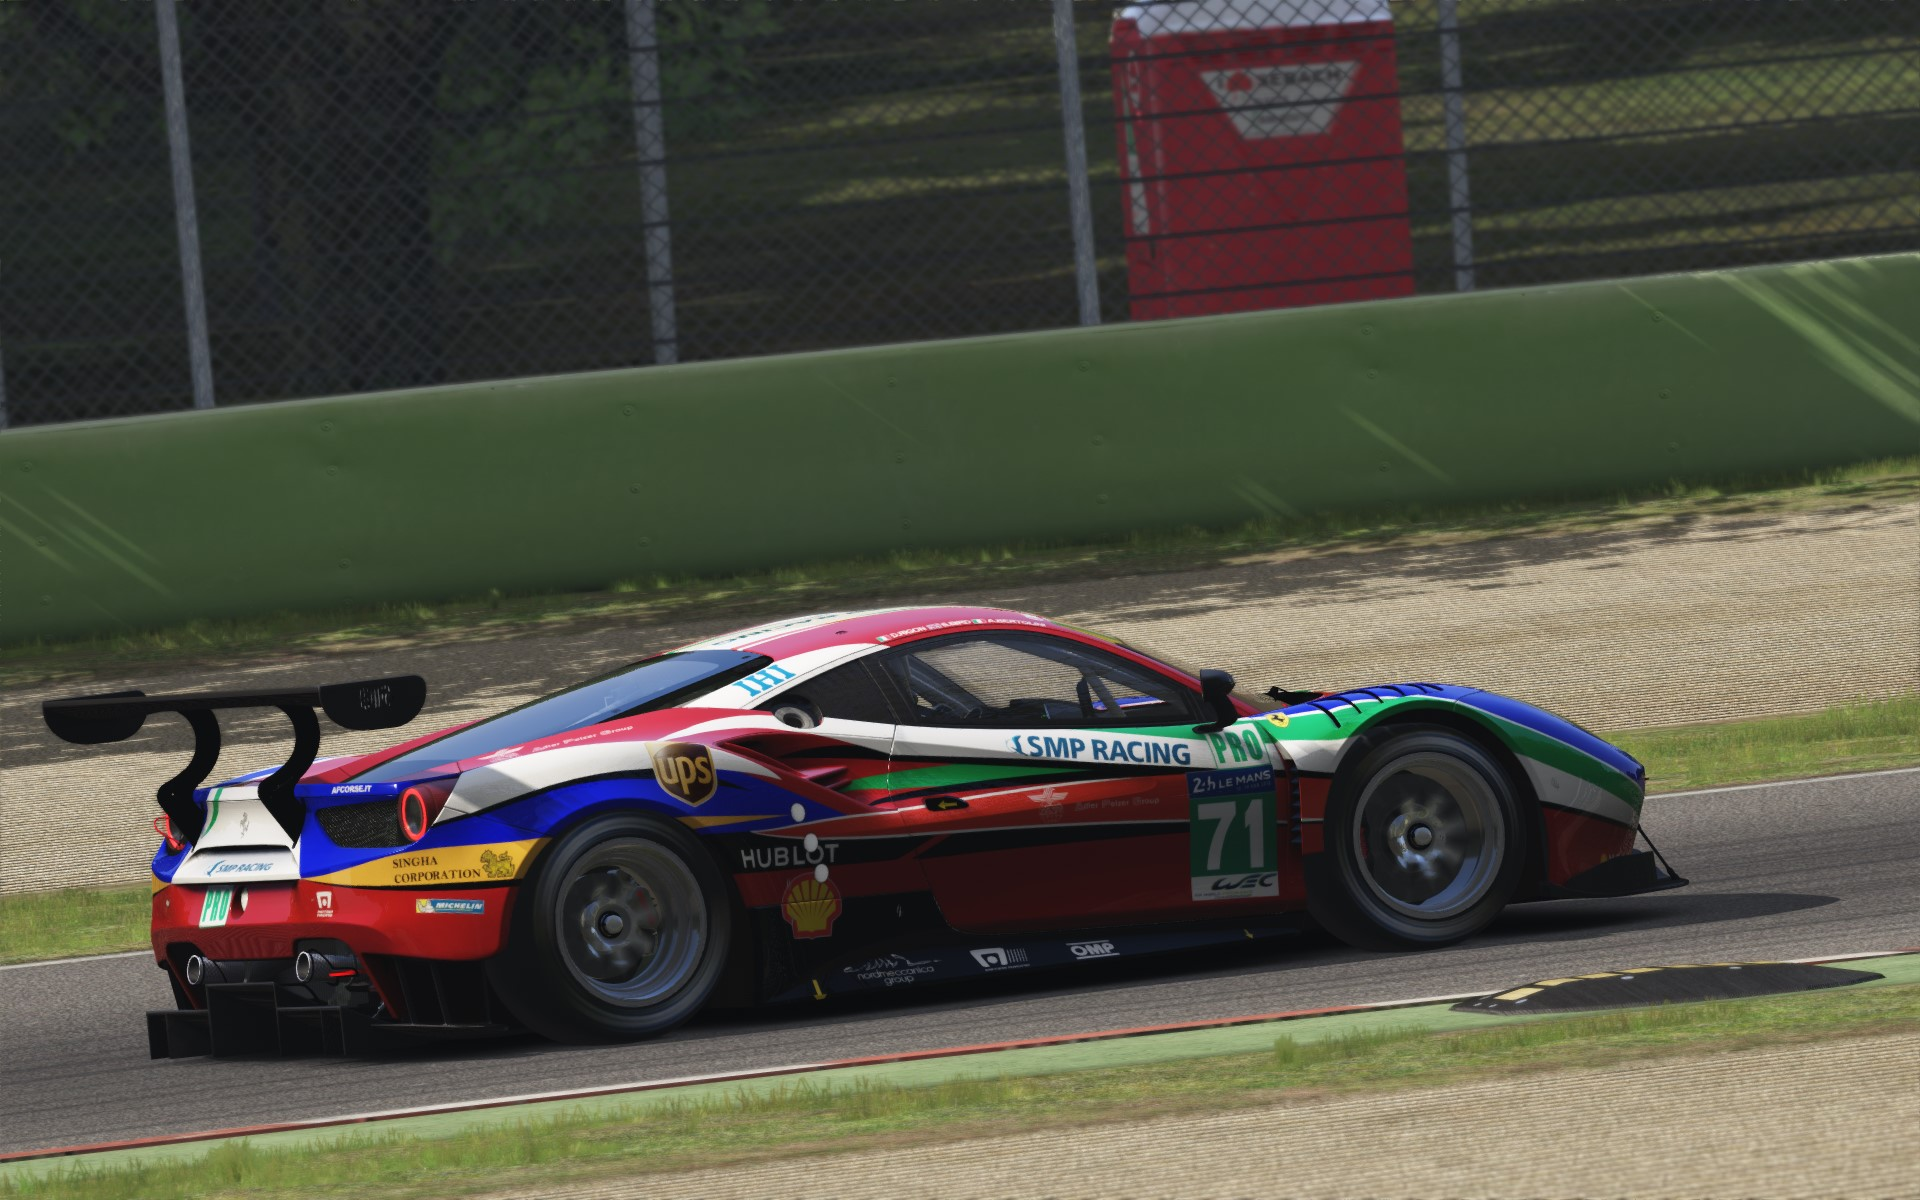 Screenshot_ks_ferrari_488_gt3_imola_7-8-116-12-50-9.jpg